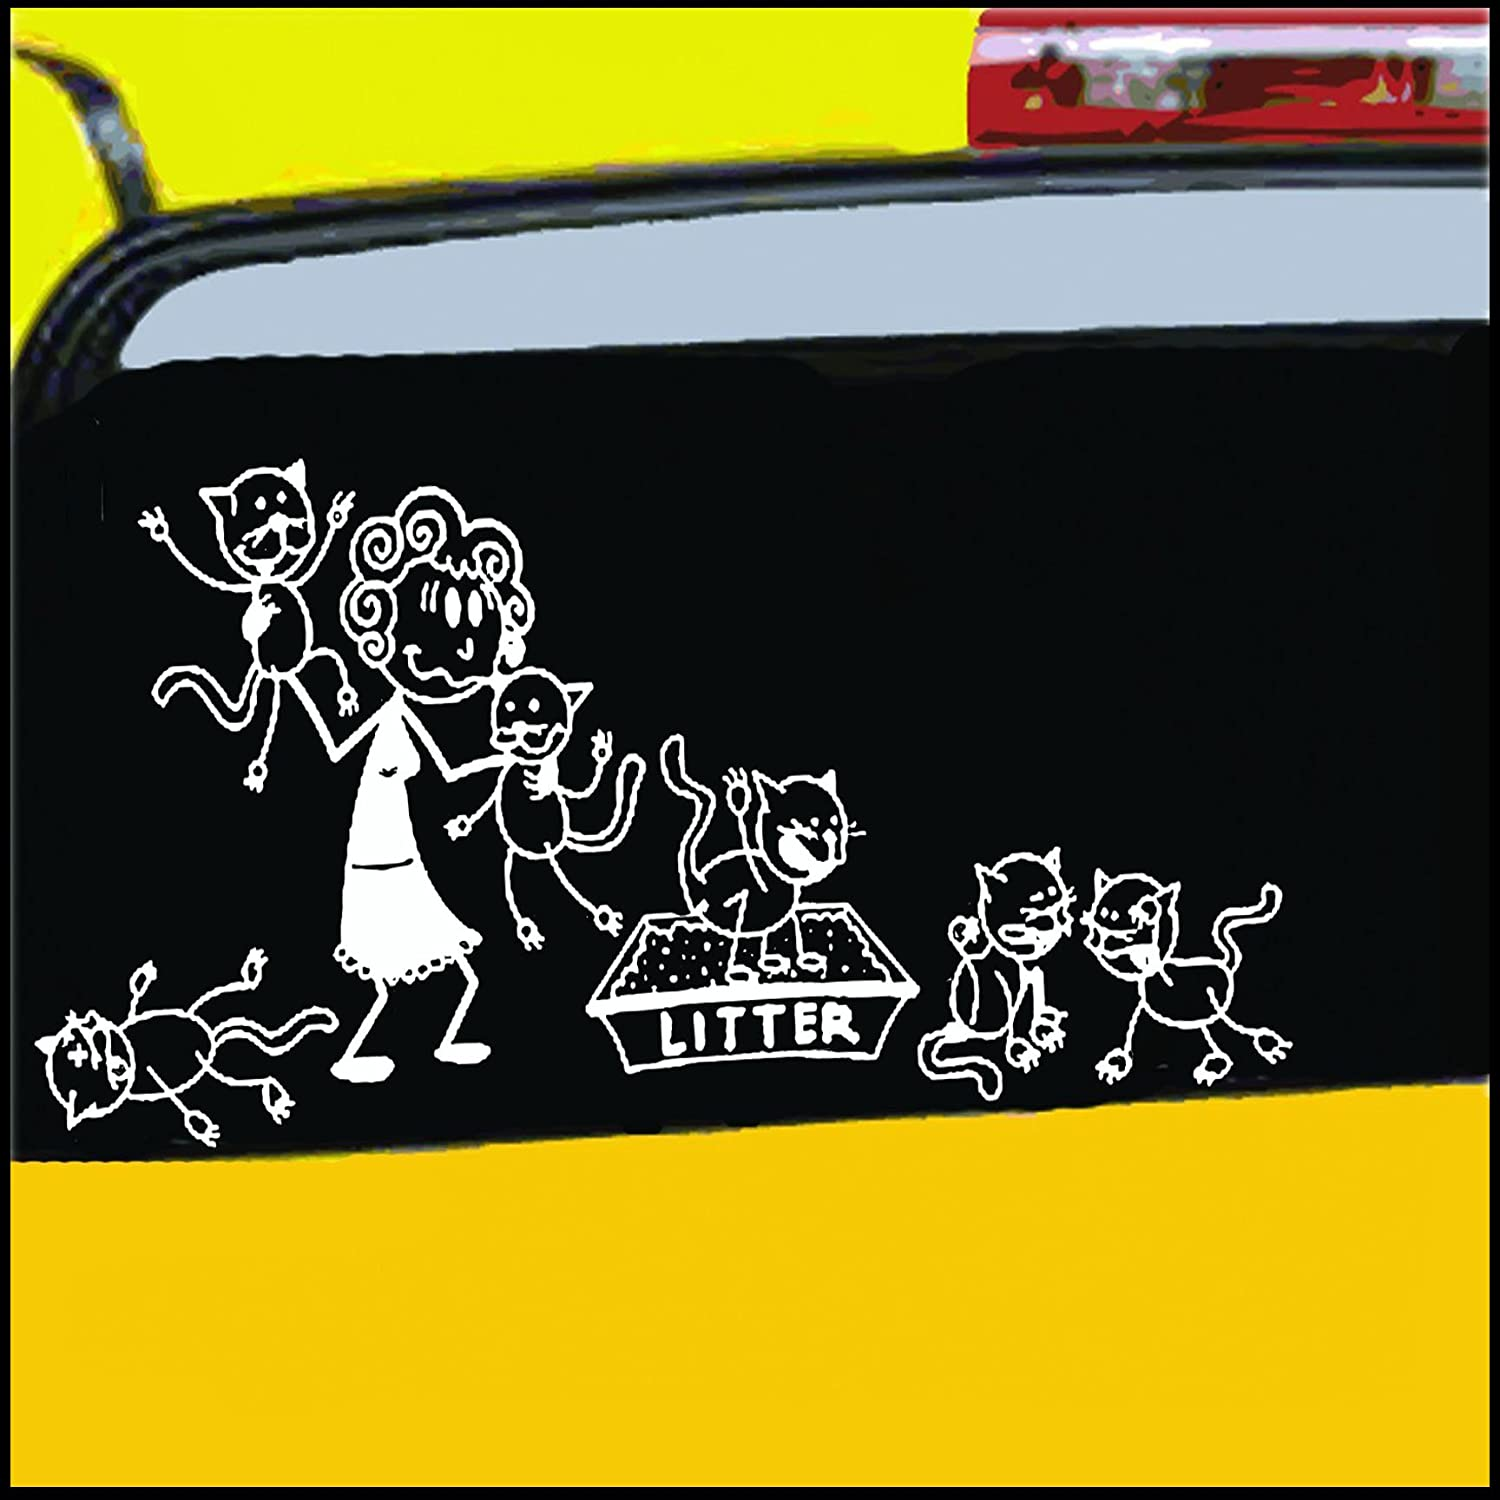 Nepa designs crazy cat lady stick figure family decal can be applied to any surface funny vinyl decal sticker white in color no inks 100 vinyl 8 5x 5 5